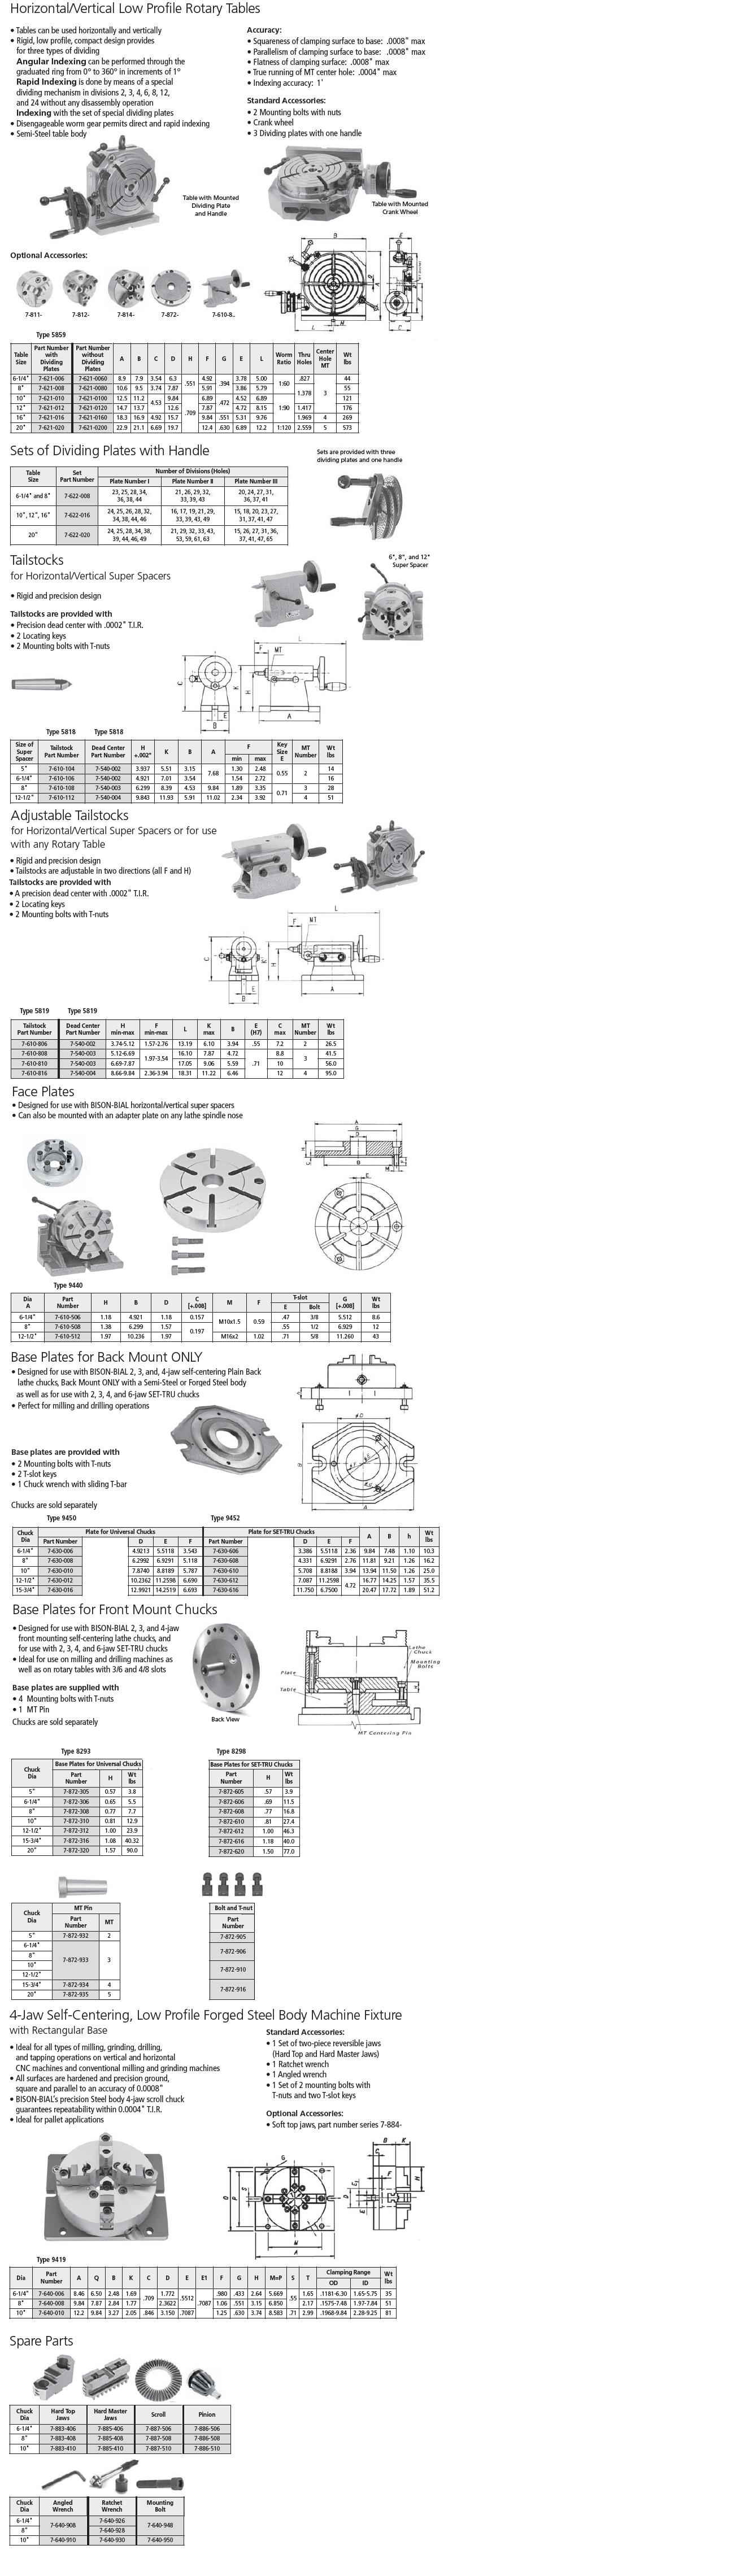 Rotary Table, Horizontal/Veritcal Indexing Dividing Heads & Tables